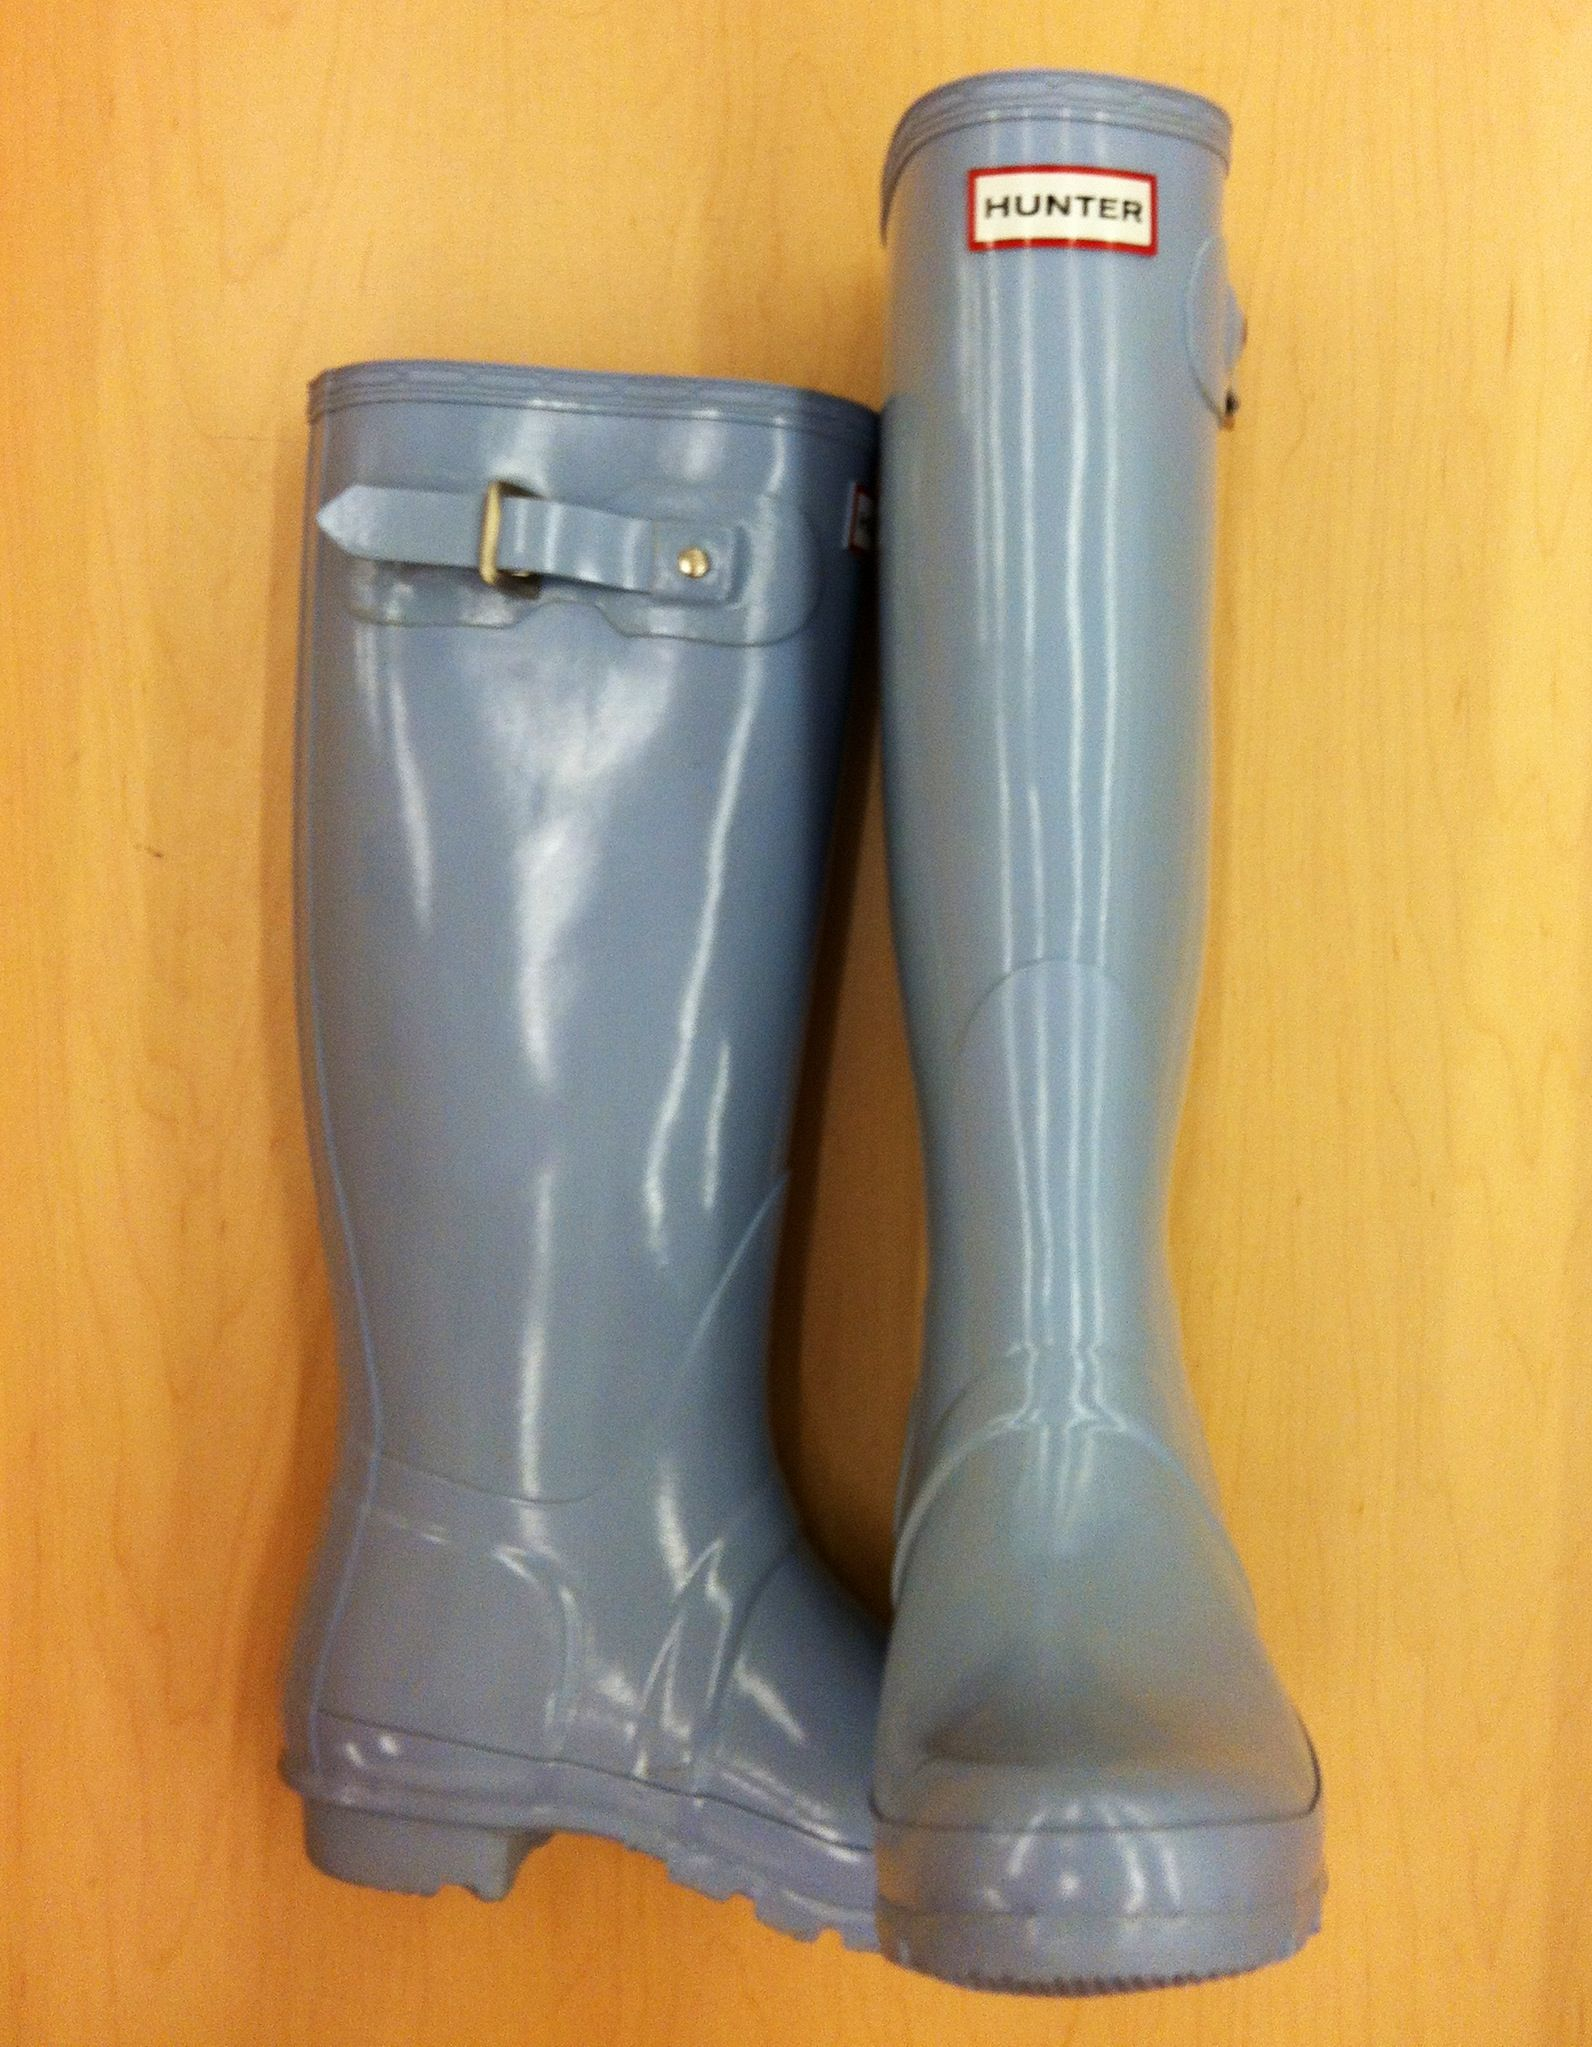 I just really really want these...Hunter Boots